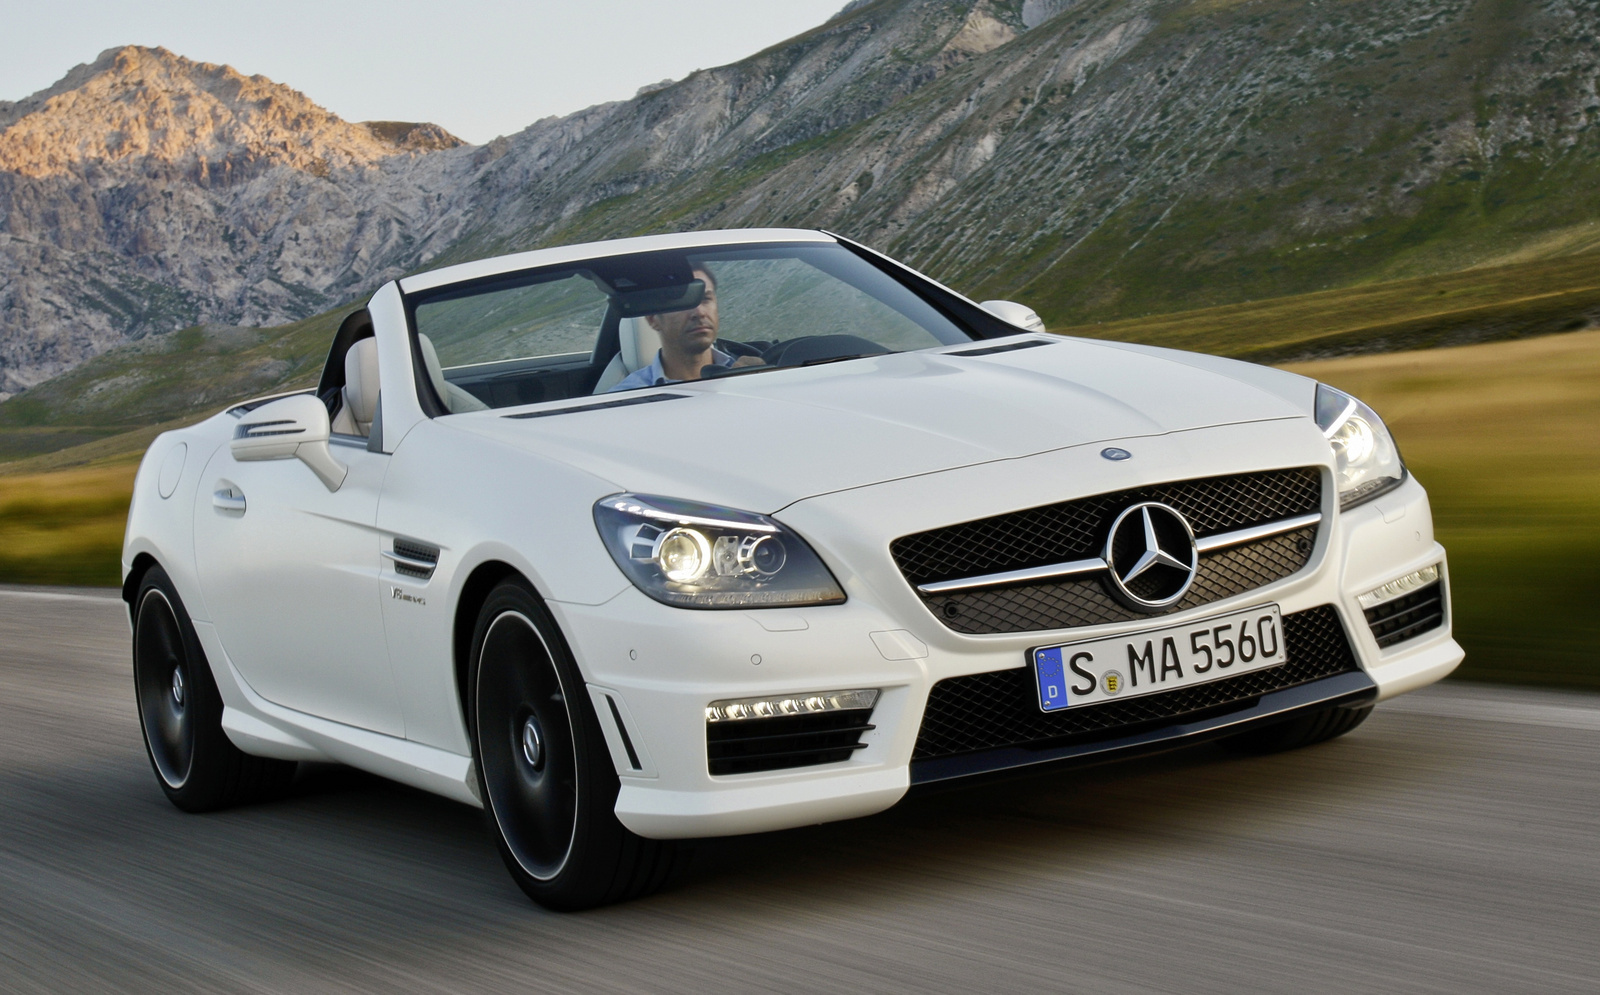 2014 mercedes benz slk class overview cargurus for Mercedes benz account